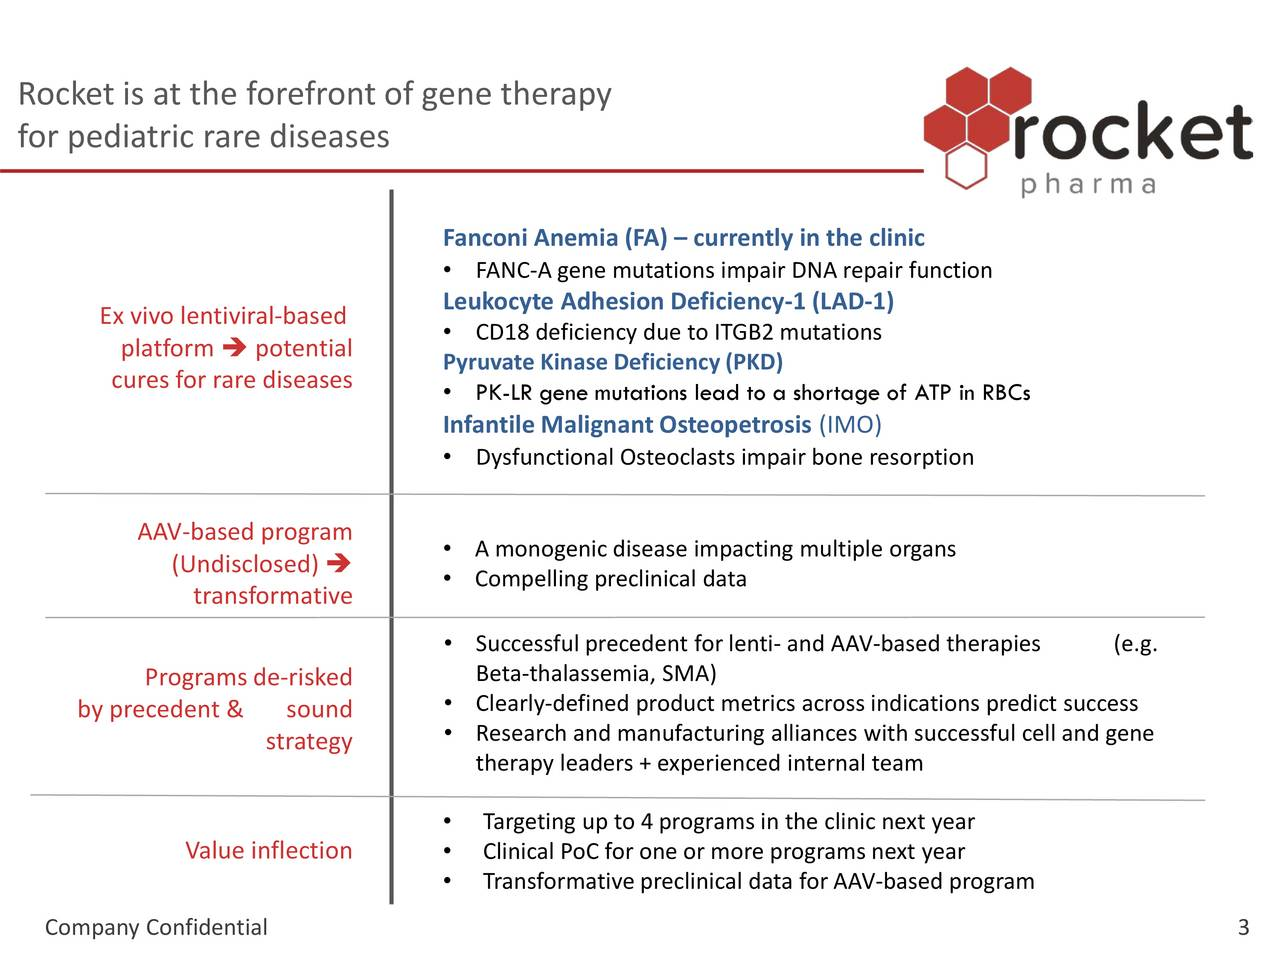 for pediatric rare diseases Fanconi Anemia (FA)  currently in the clinic FANC-A gene mutations impair DNA repair function Ex vivo lentiviral-based Leukocyte Adhesion Deficiency-1 (LAD-1) platform  potential  CD18 deficiency due to ITGB2 mutations Pyruvate Kinase Deficiency (PKD) cures for rare diseases  PK-LR gene mutations lead to a shortage of ATP in RBCs Infantile Malignant Osteopetrosis (IMO) Dysfunctional Osteoclasts impair bone resorption AAV-based program (Undisclosed)   A monogenic disease impacting multiple organs Compellingpreclinical data transformative Successfulprecedent forlenti- and AAV-based therapies (e.g. Programs de-risked Beta-thalassemia, SMA) by precedent & sound  Clearly-defined product metrics across indications predict success strategy  Research and manufacturing alliances with successful cell and gene therapy leaders + experienced internal team Targeting up to 4 programs in theclinic next year Value inflection  Clinical PoCforone or more programs next year Transformativepreclinical data for AAV-based program Company Confidential 3